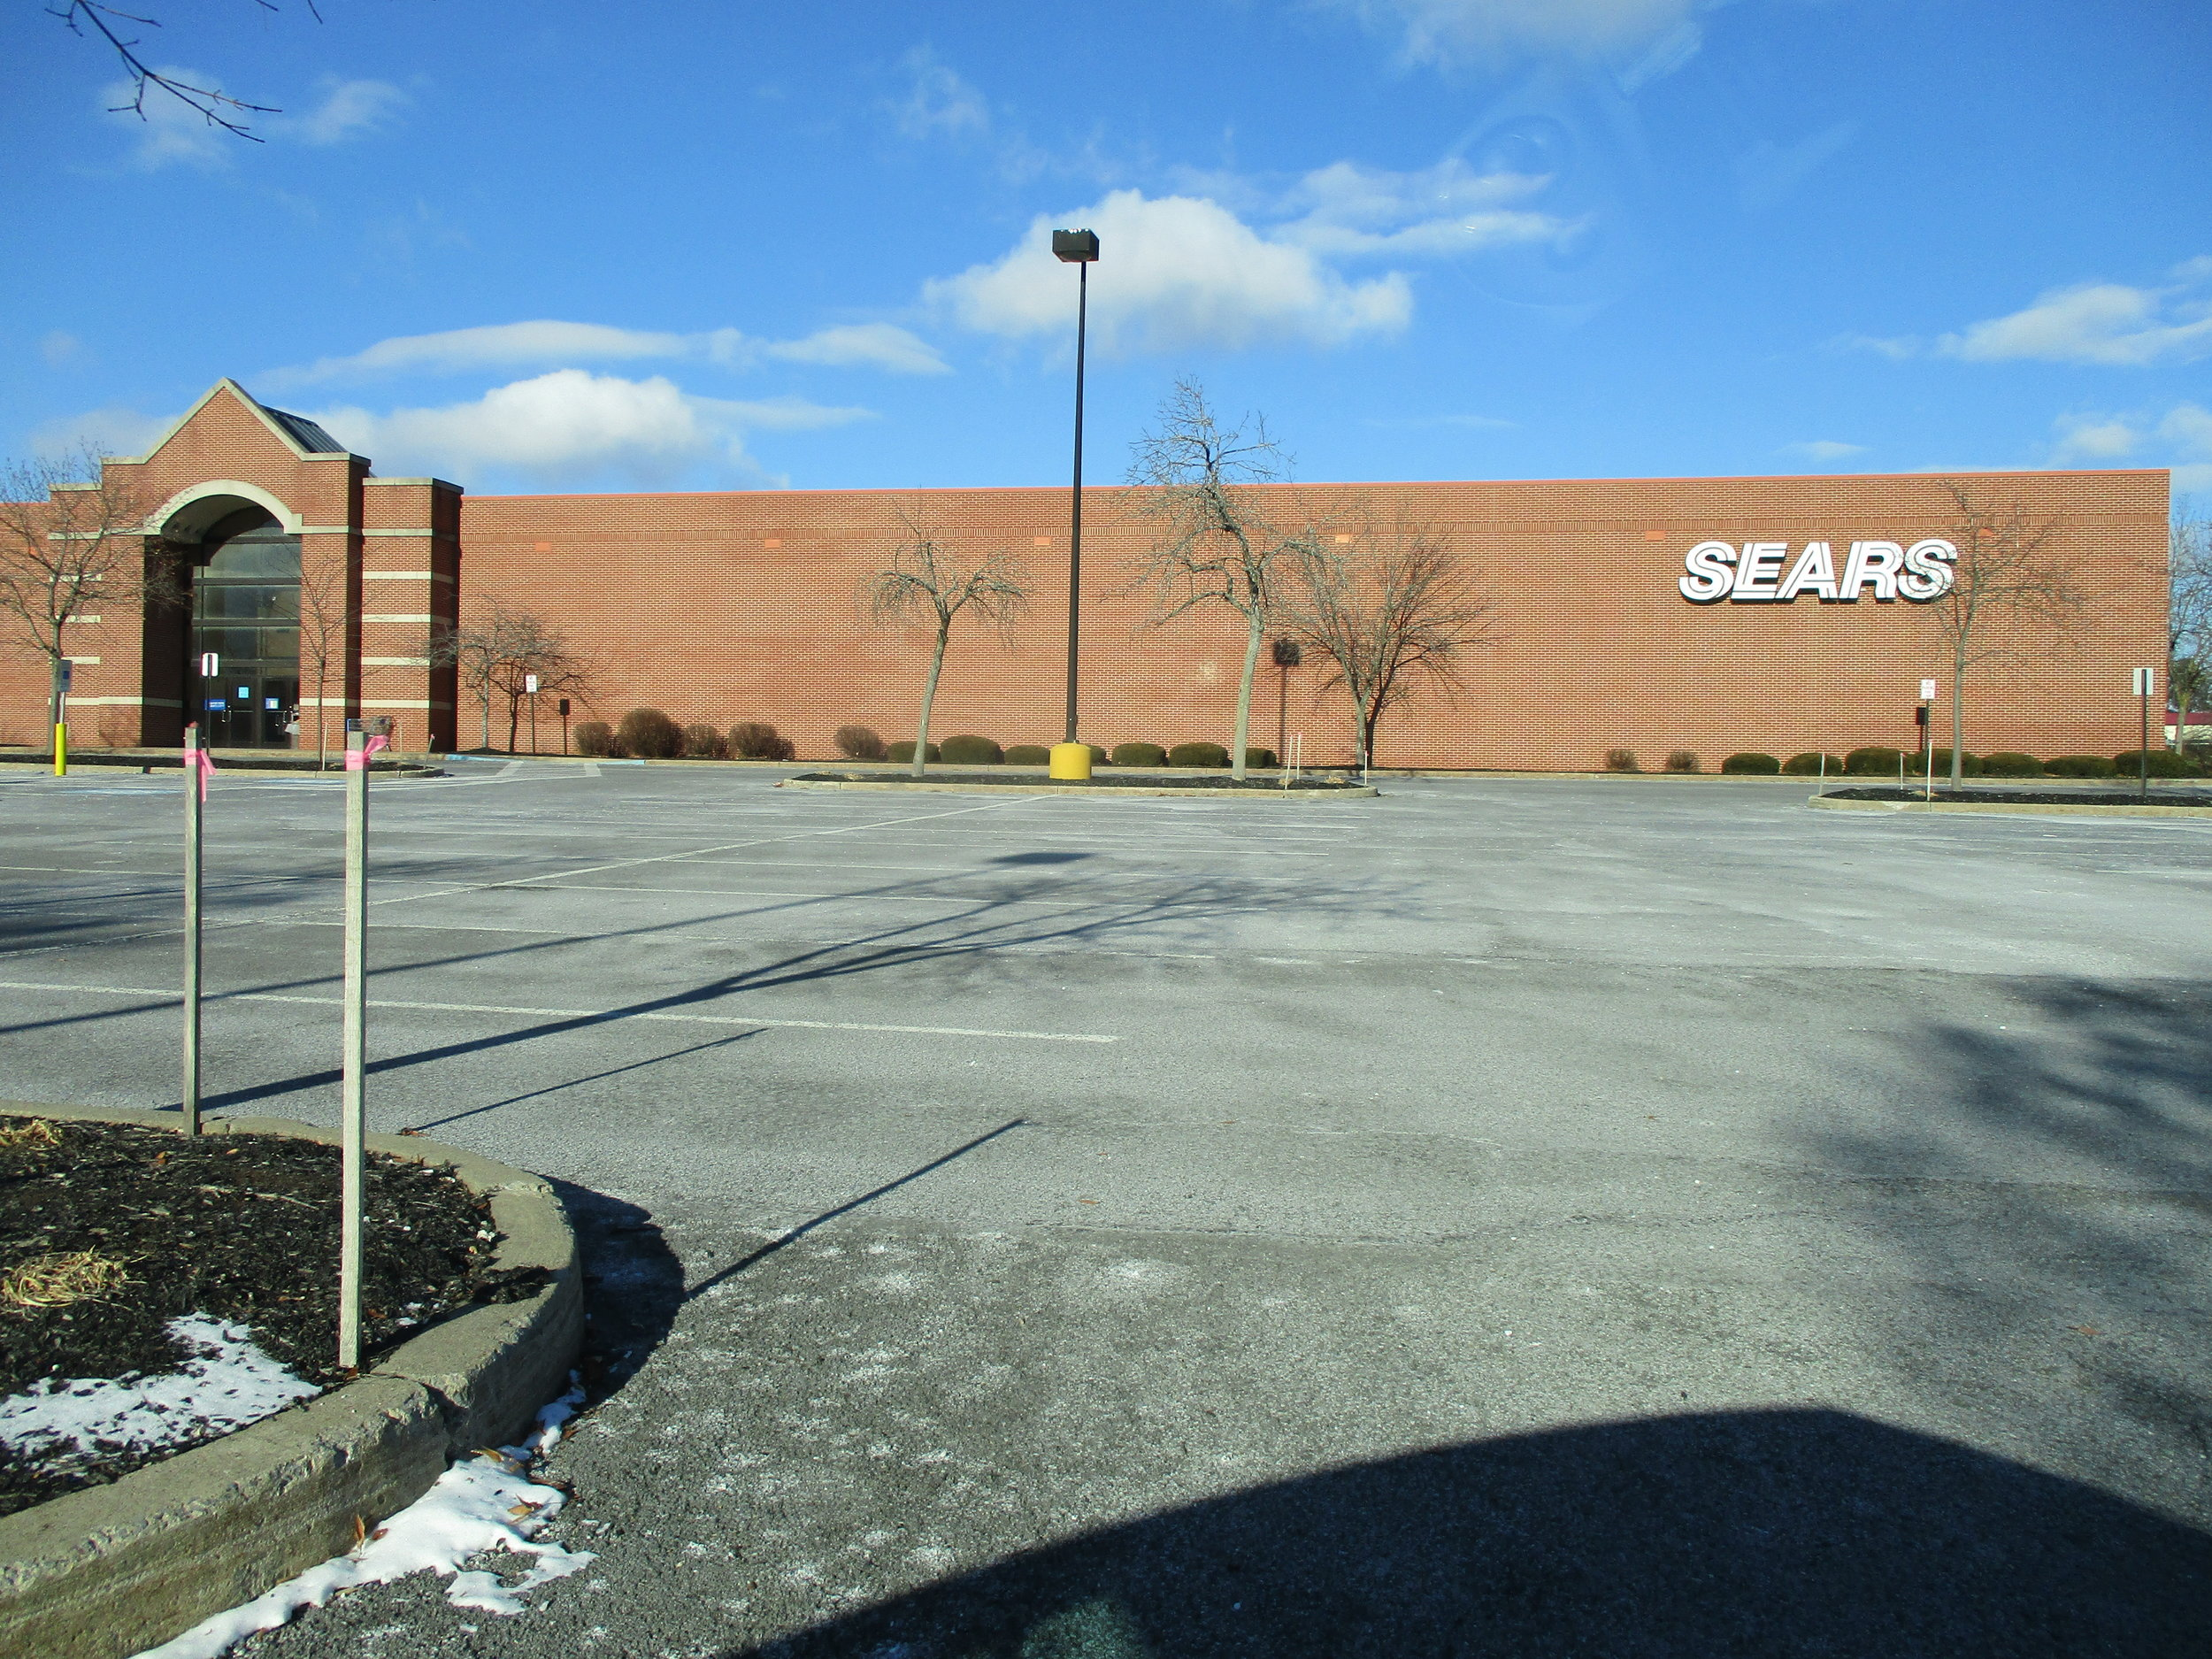 2. Sears at the Nittany Mall is closing.